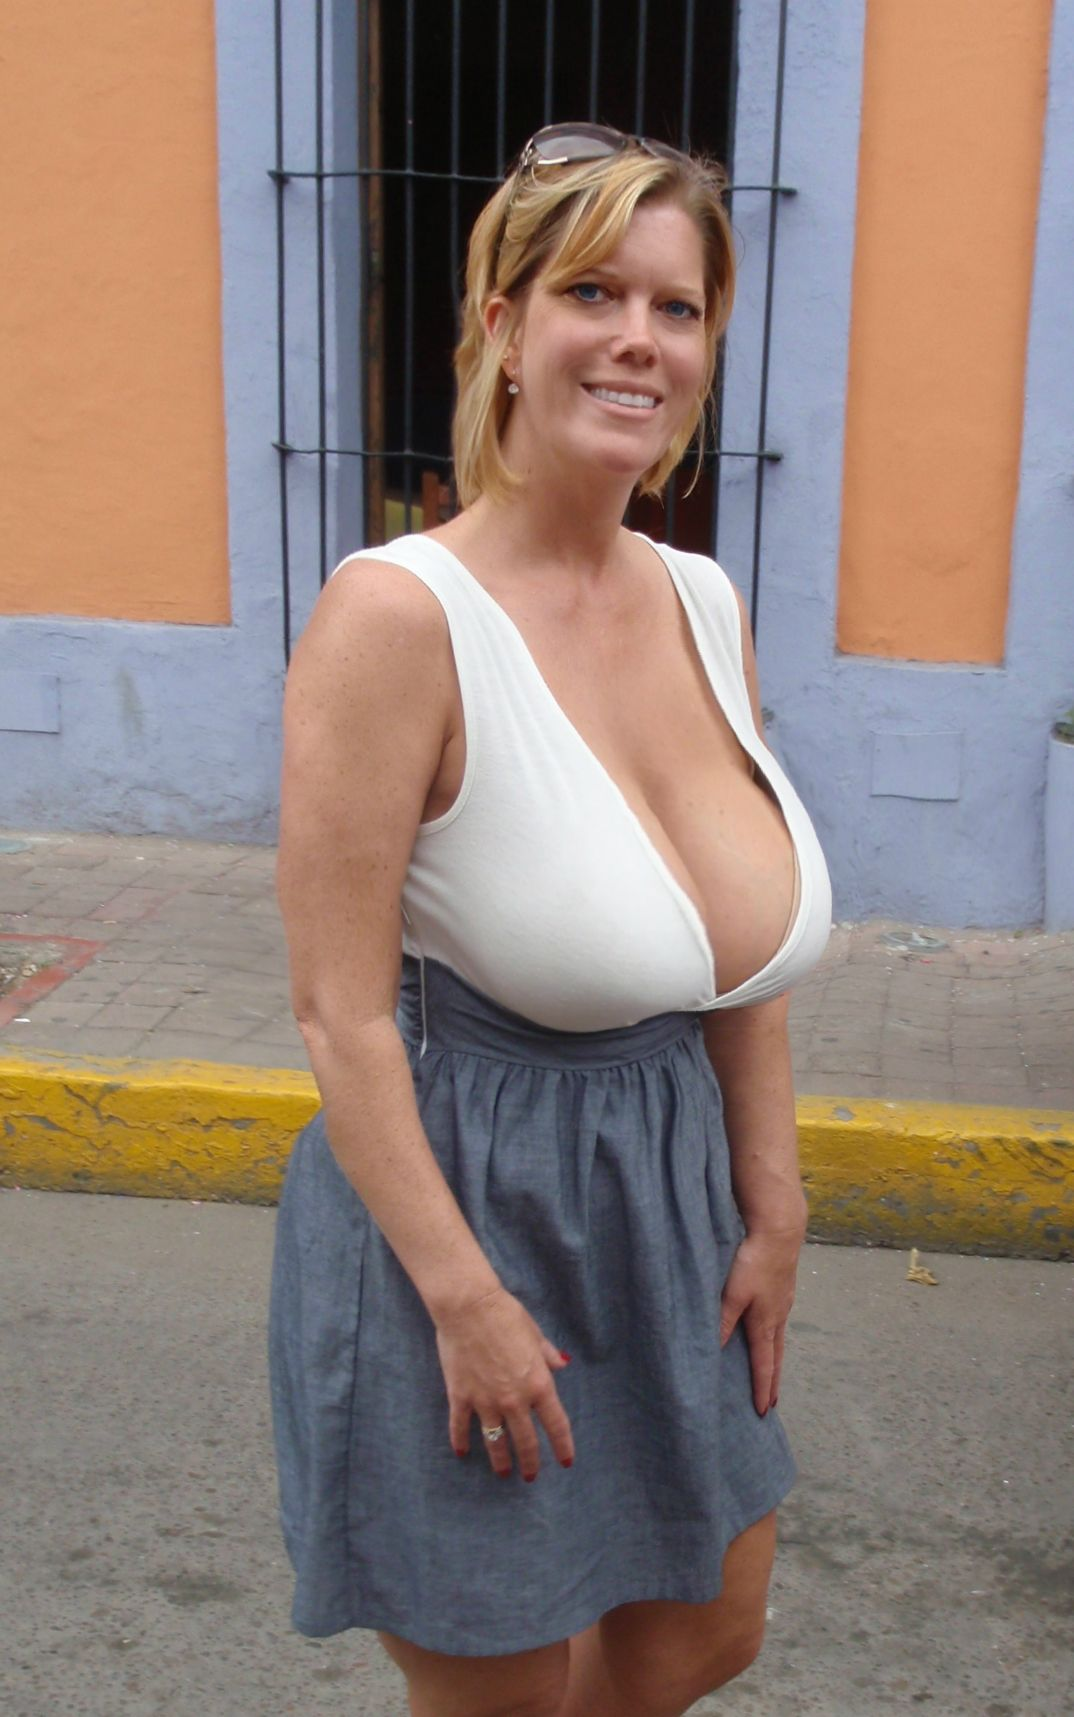 Amateur mature picture woman